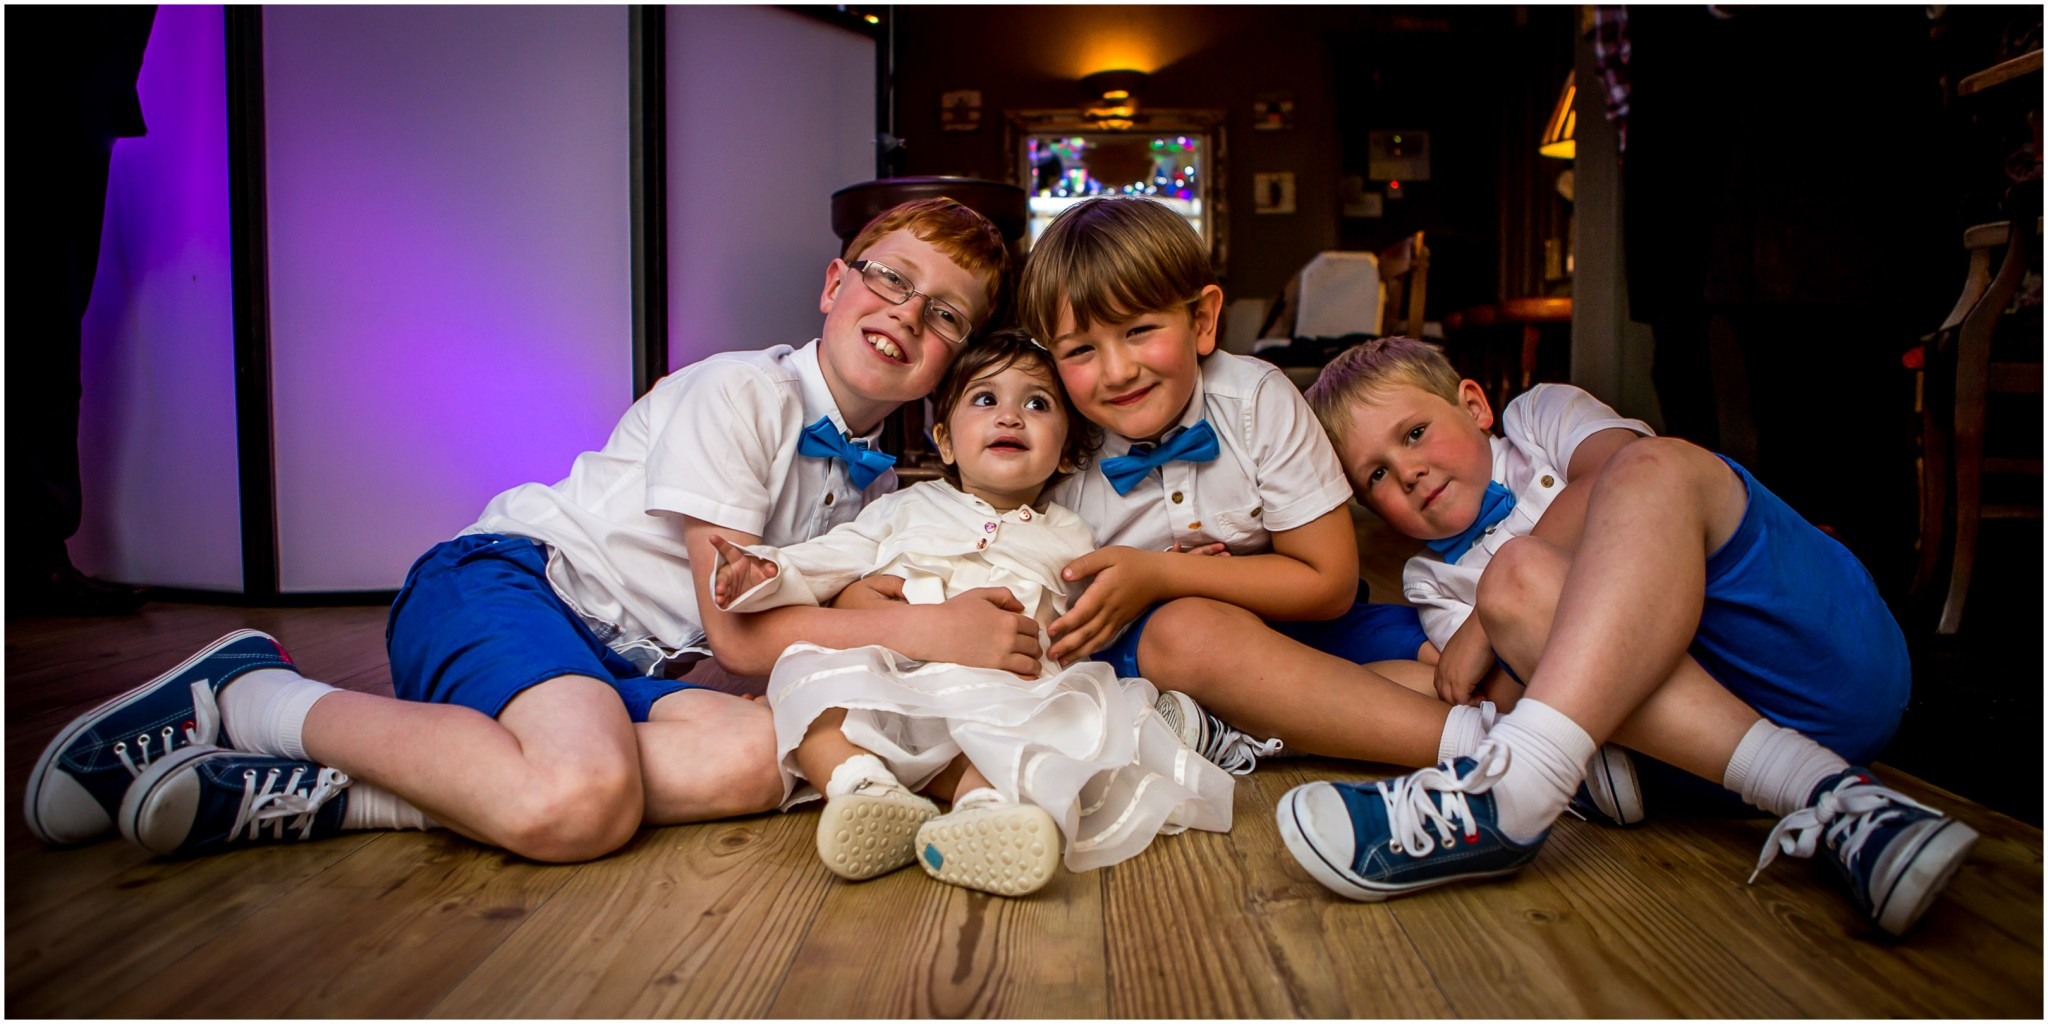 winchester-basing-room-wedding-photography-046